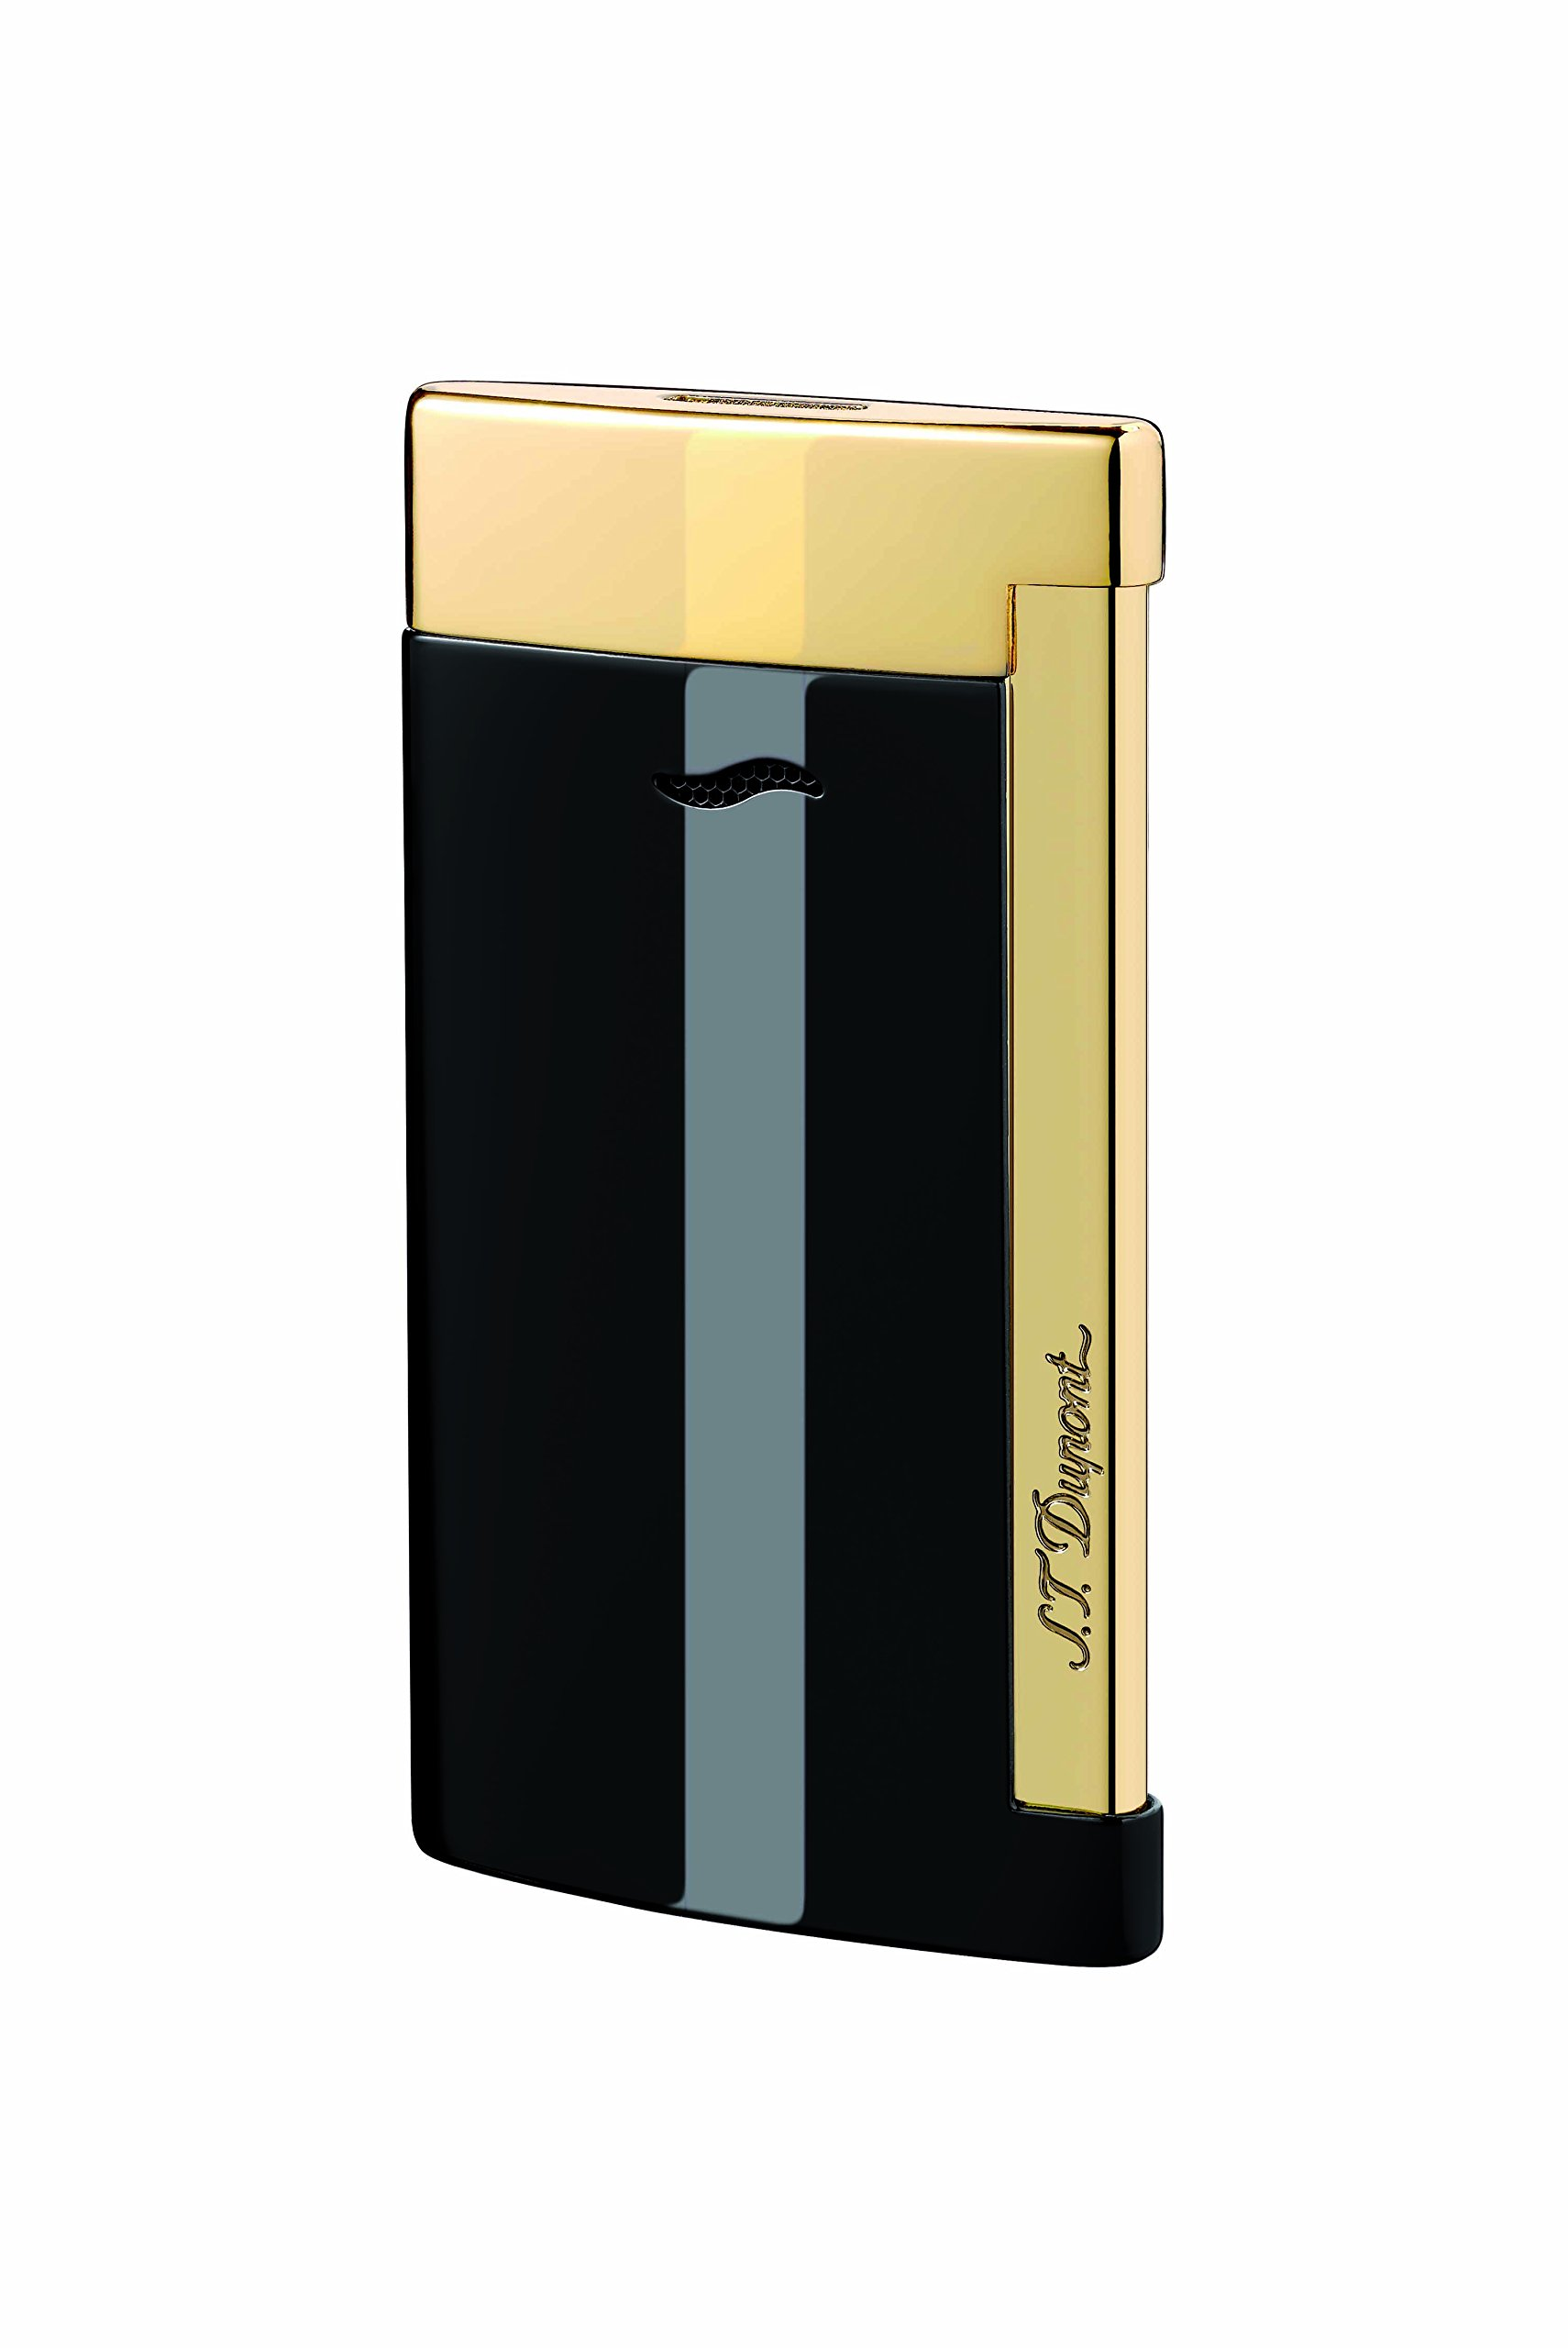 S.T. Dupont Lighter Slim 7 - Black & Gold Finishes